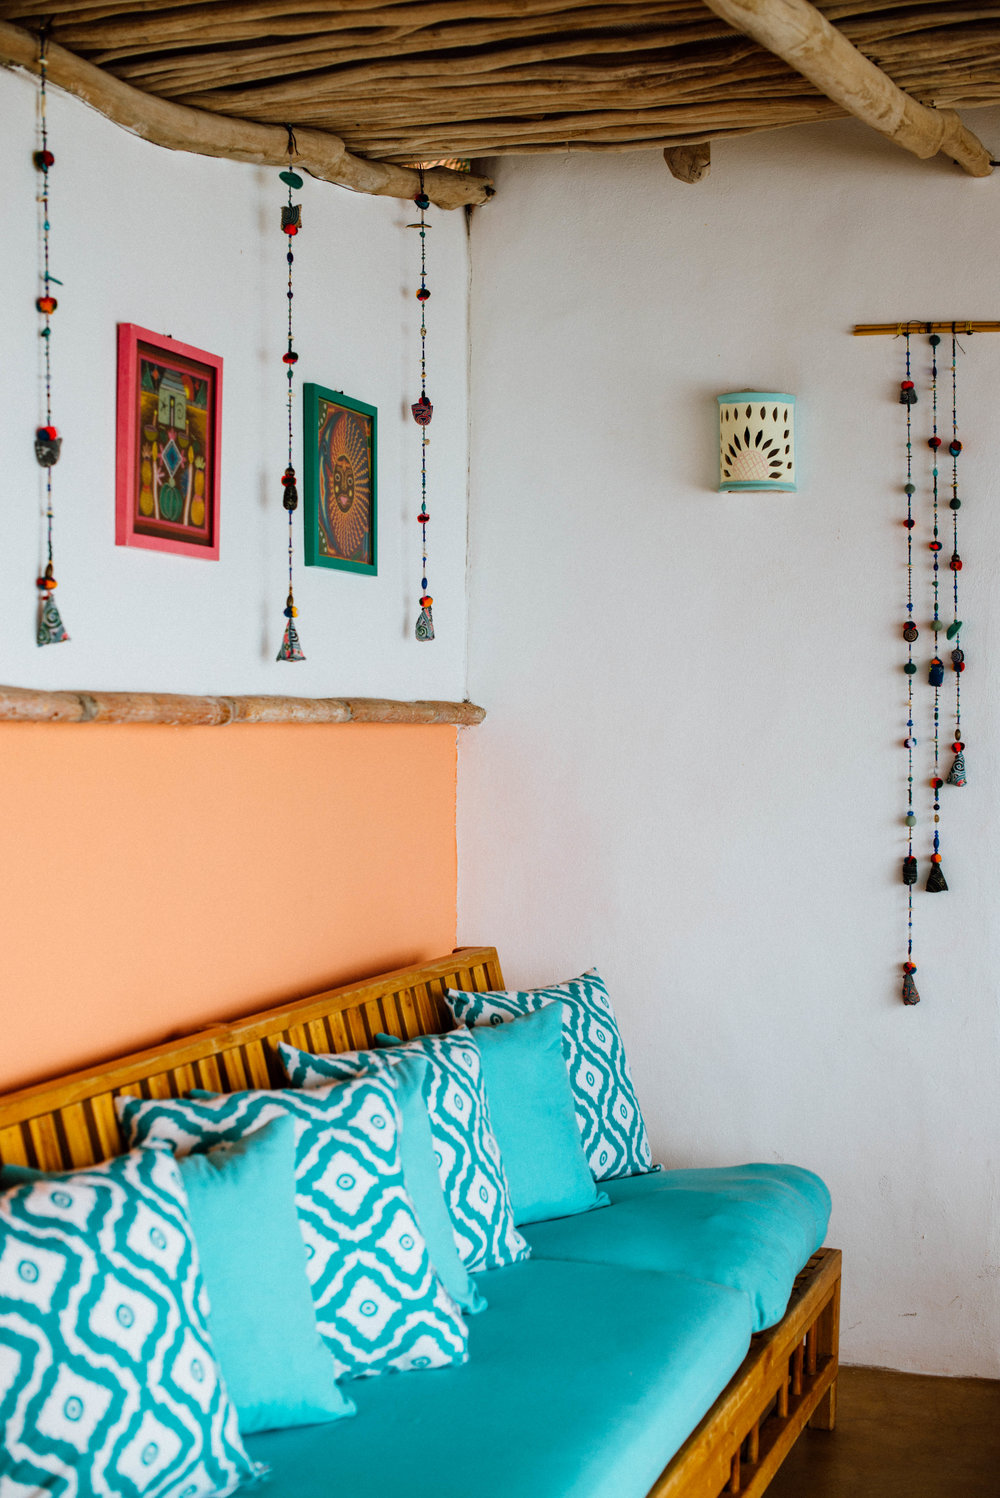 Authentic Mexican interior, like taking a happiness pill!